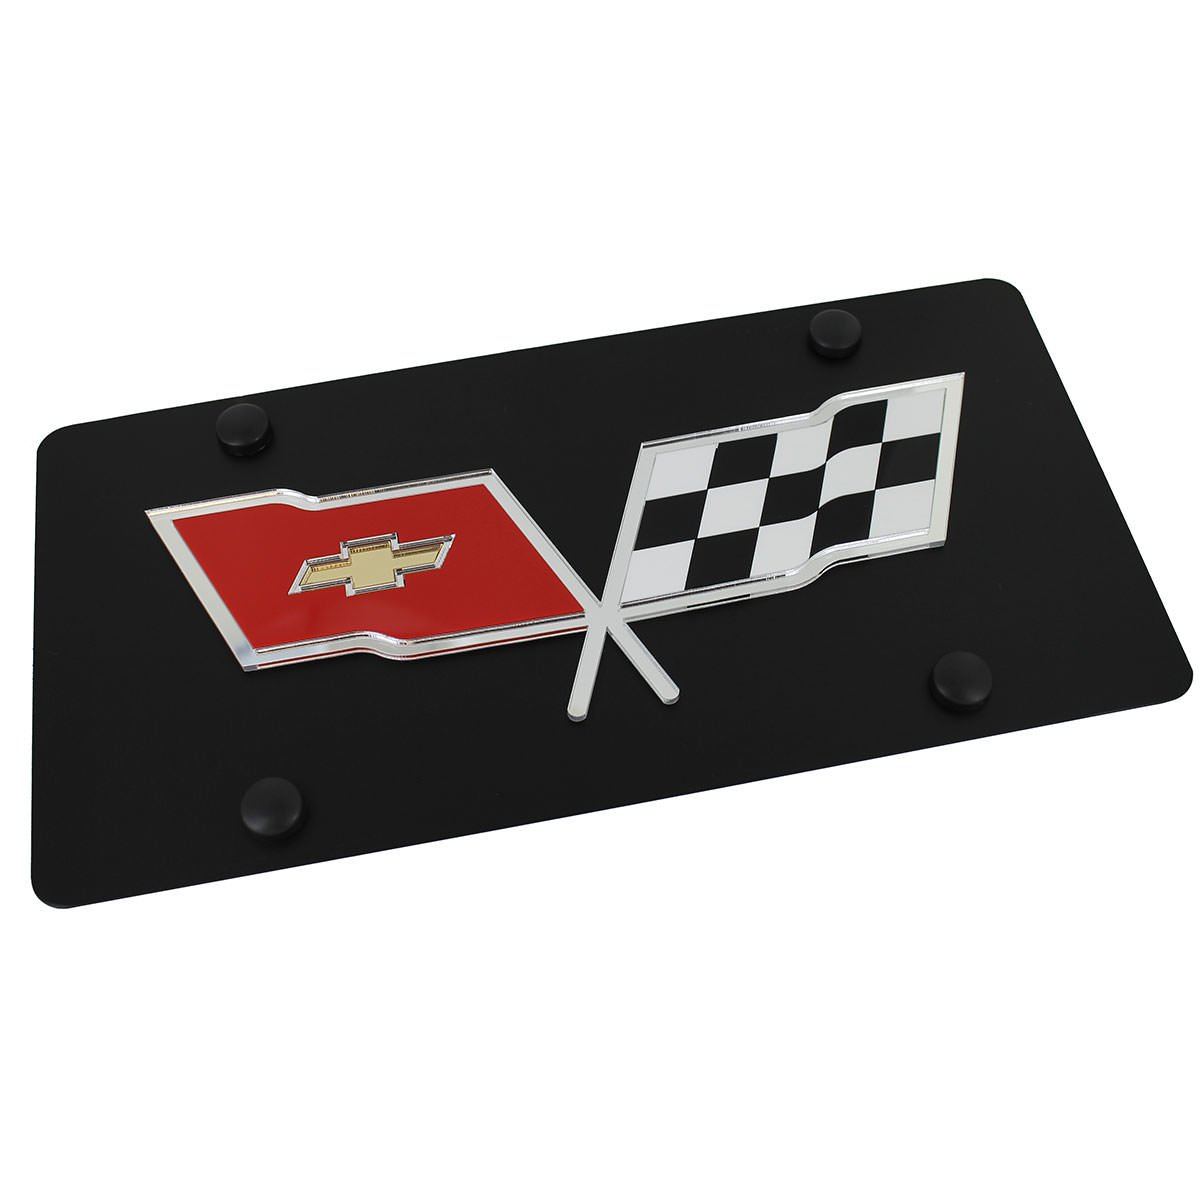 Chevrolet Corvette C3 Flags License Plate on Black Steel Chevy